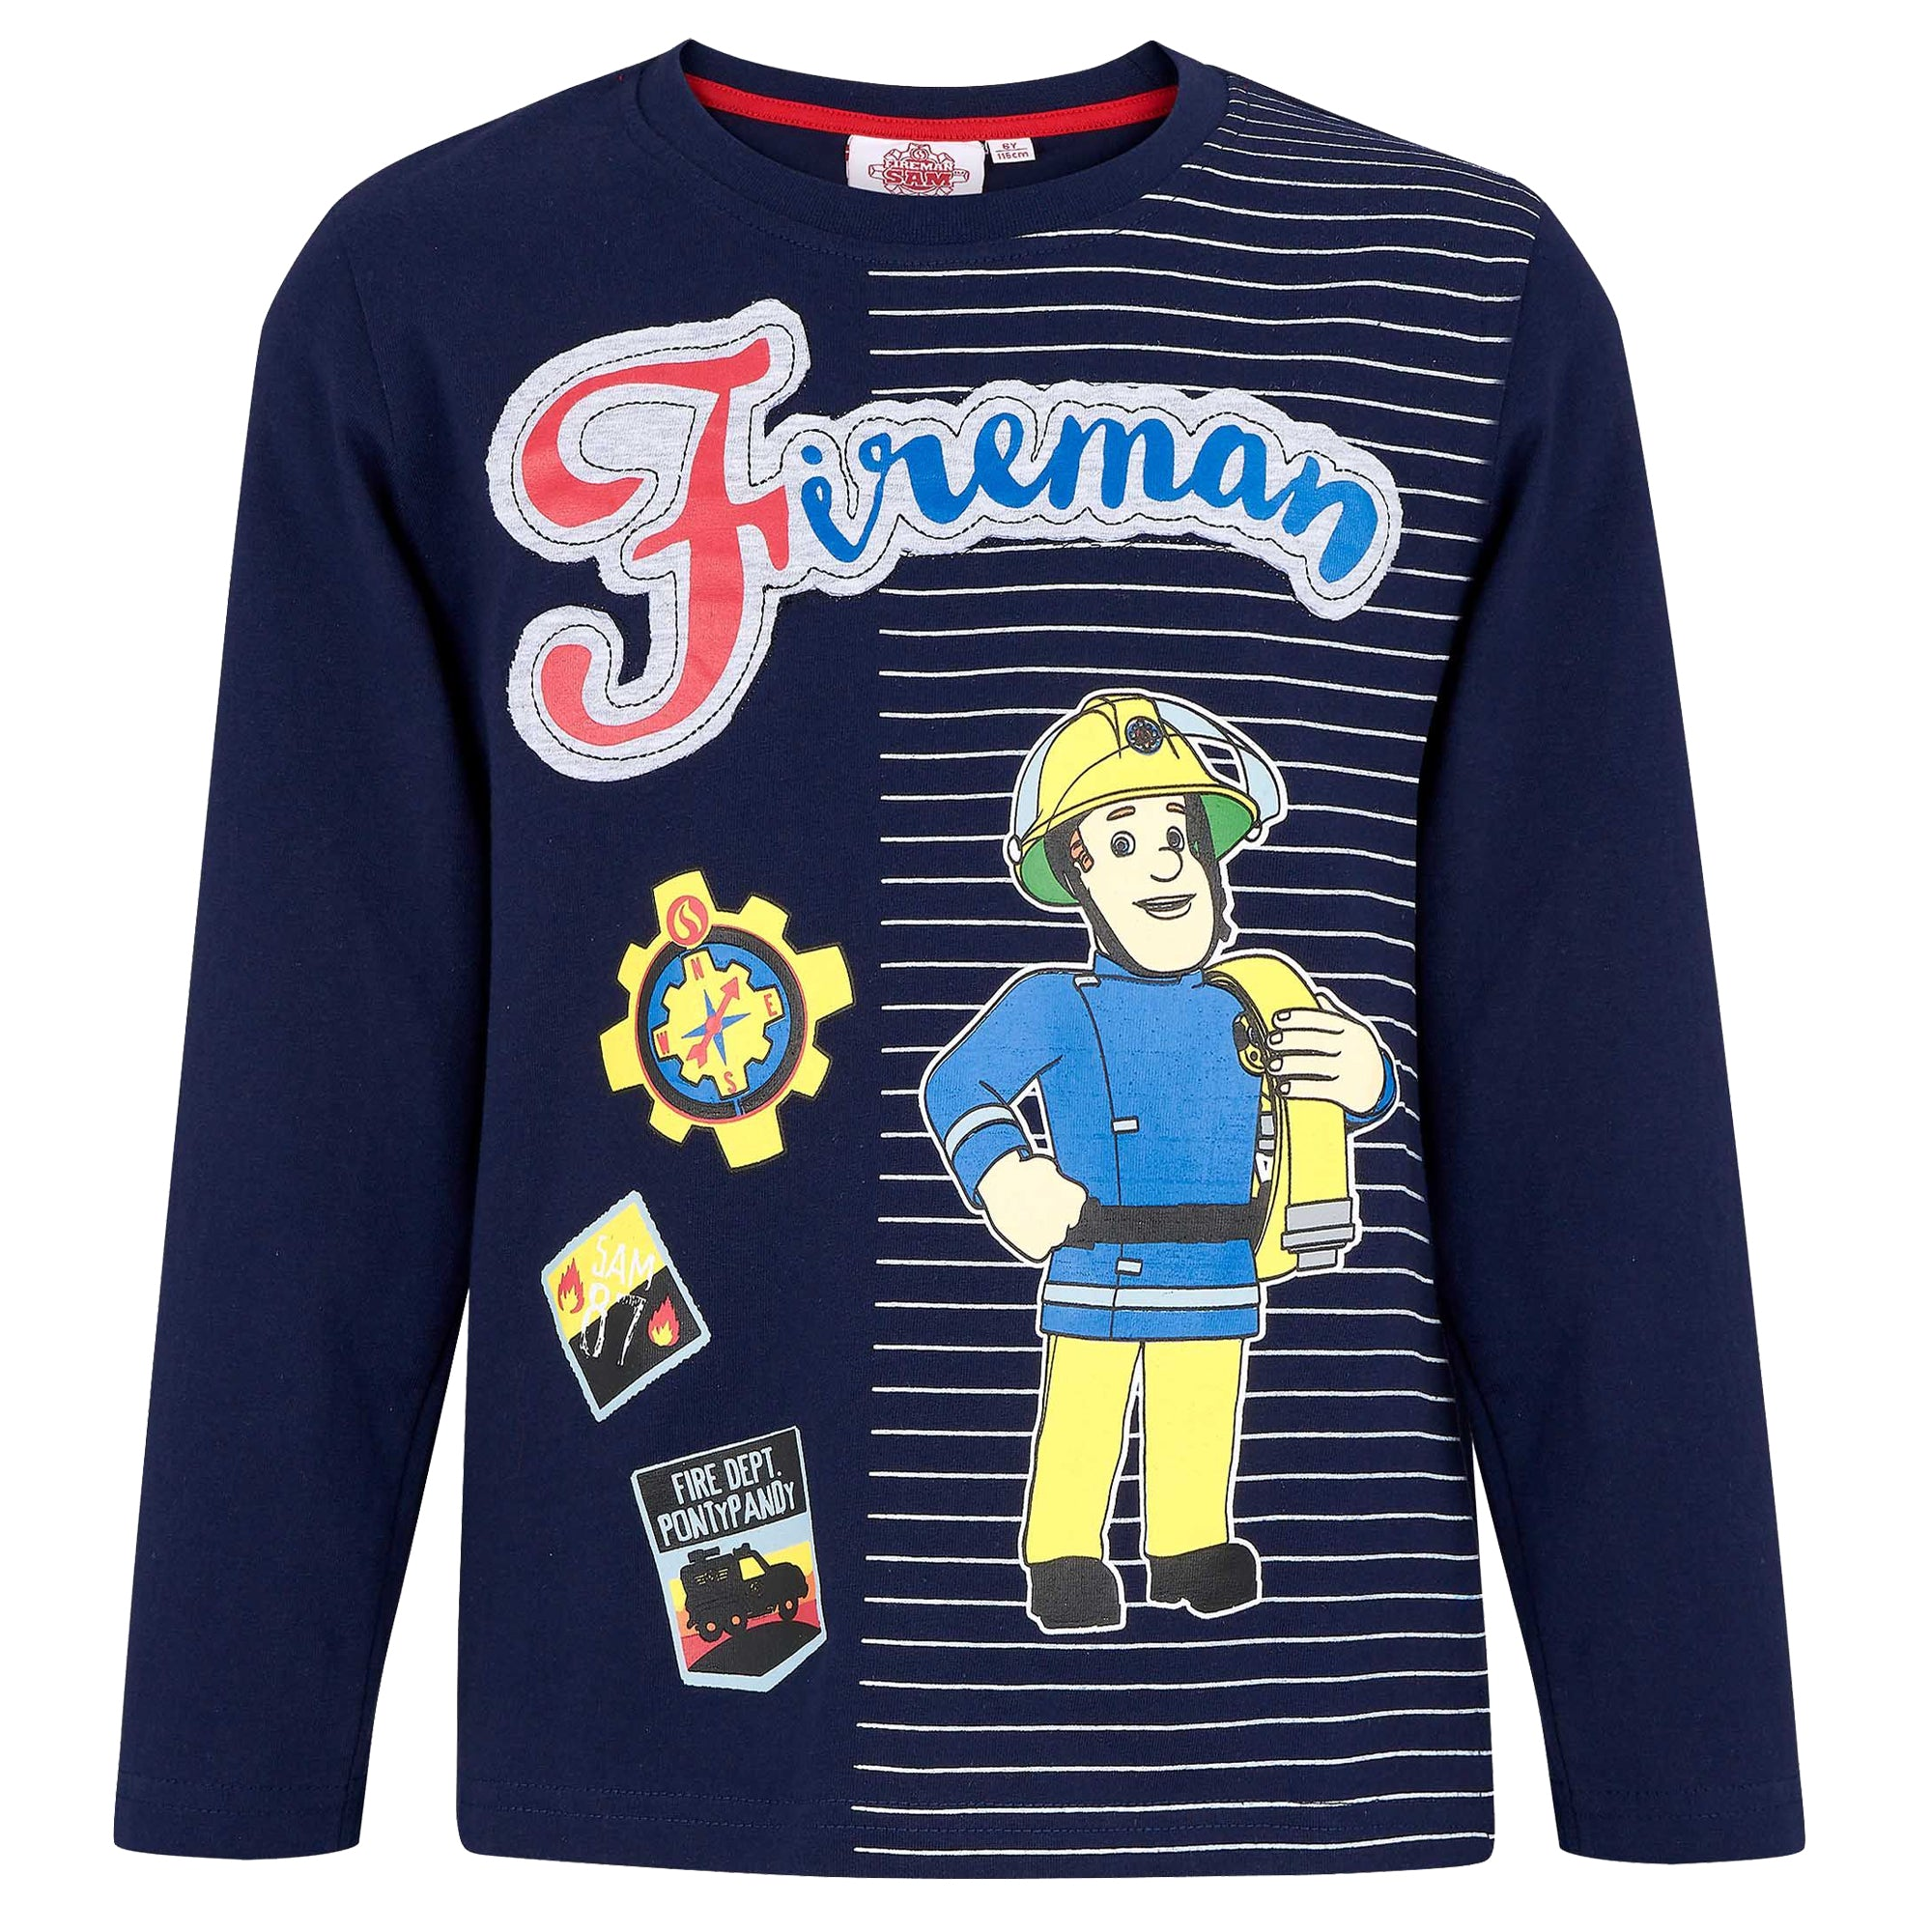 Fireman Sam Boys 100% Cotton Long Sleeve Top, T-Shirt 1-6 Years - Navy